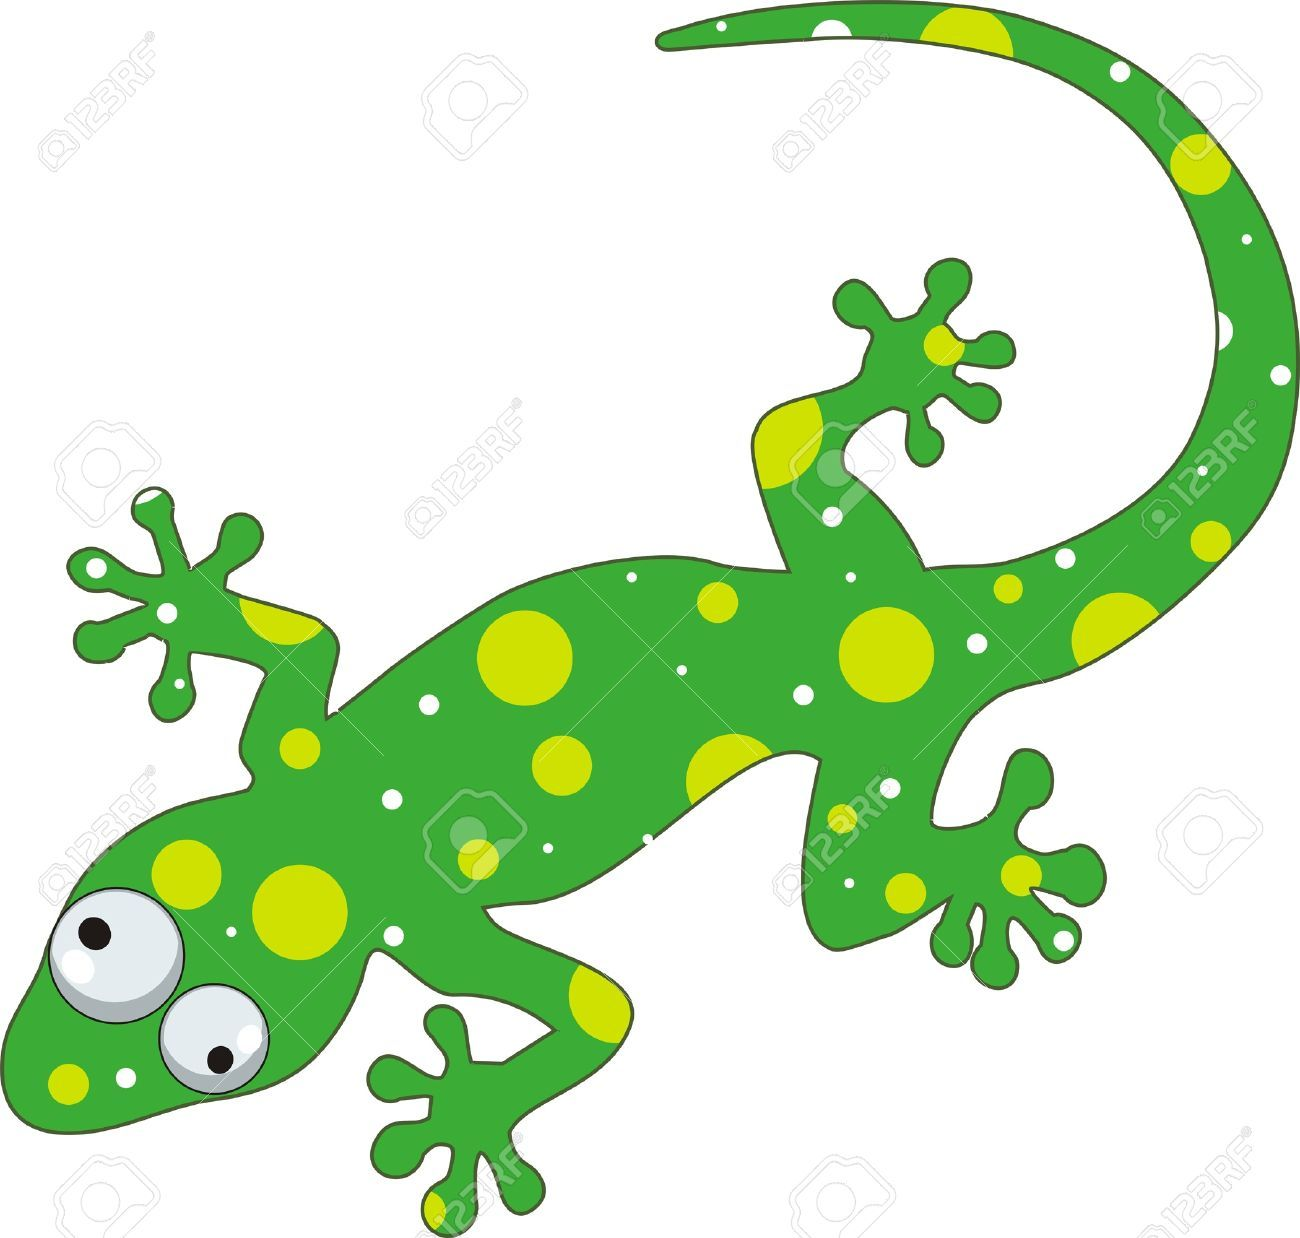 1300x1238 Chameleon Lizard Cliparts, Stock Vector And Royalty Free Chameleon